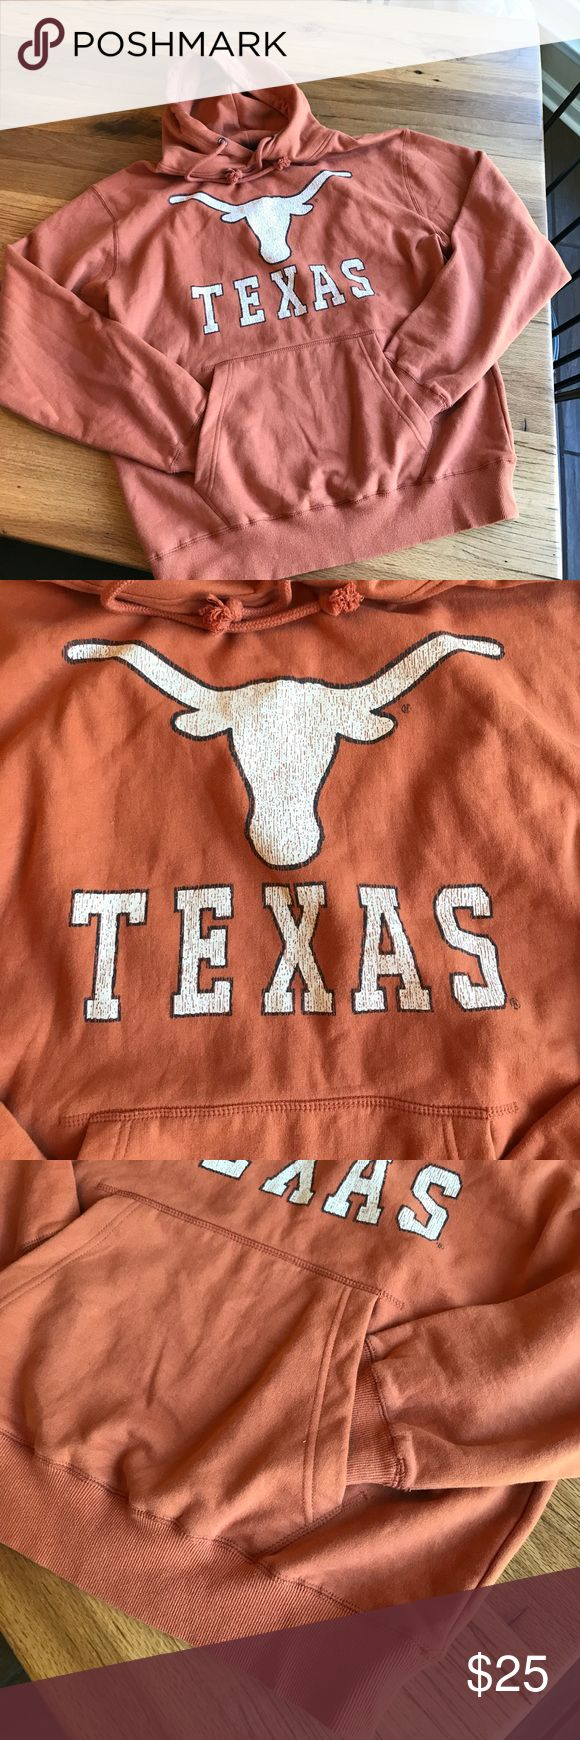 Texas Longhorns hoodie from Colosseum Athletics Pre loved but in excellent condition! Texas Longhorns hoodie. Soft and comfortable. Broken in. Cotton/Polyester blend!  Football season is coming! Colosseum Athletics Shirts Sweatshirts & Hoodies